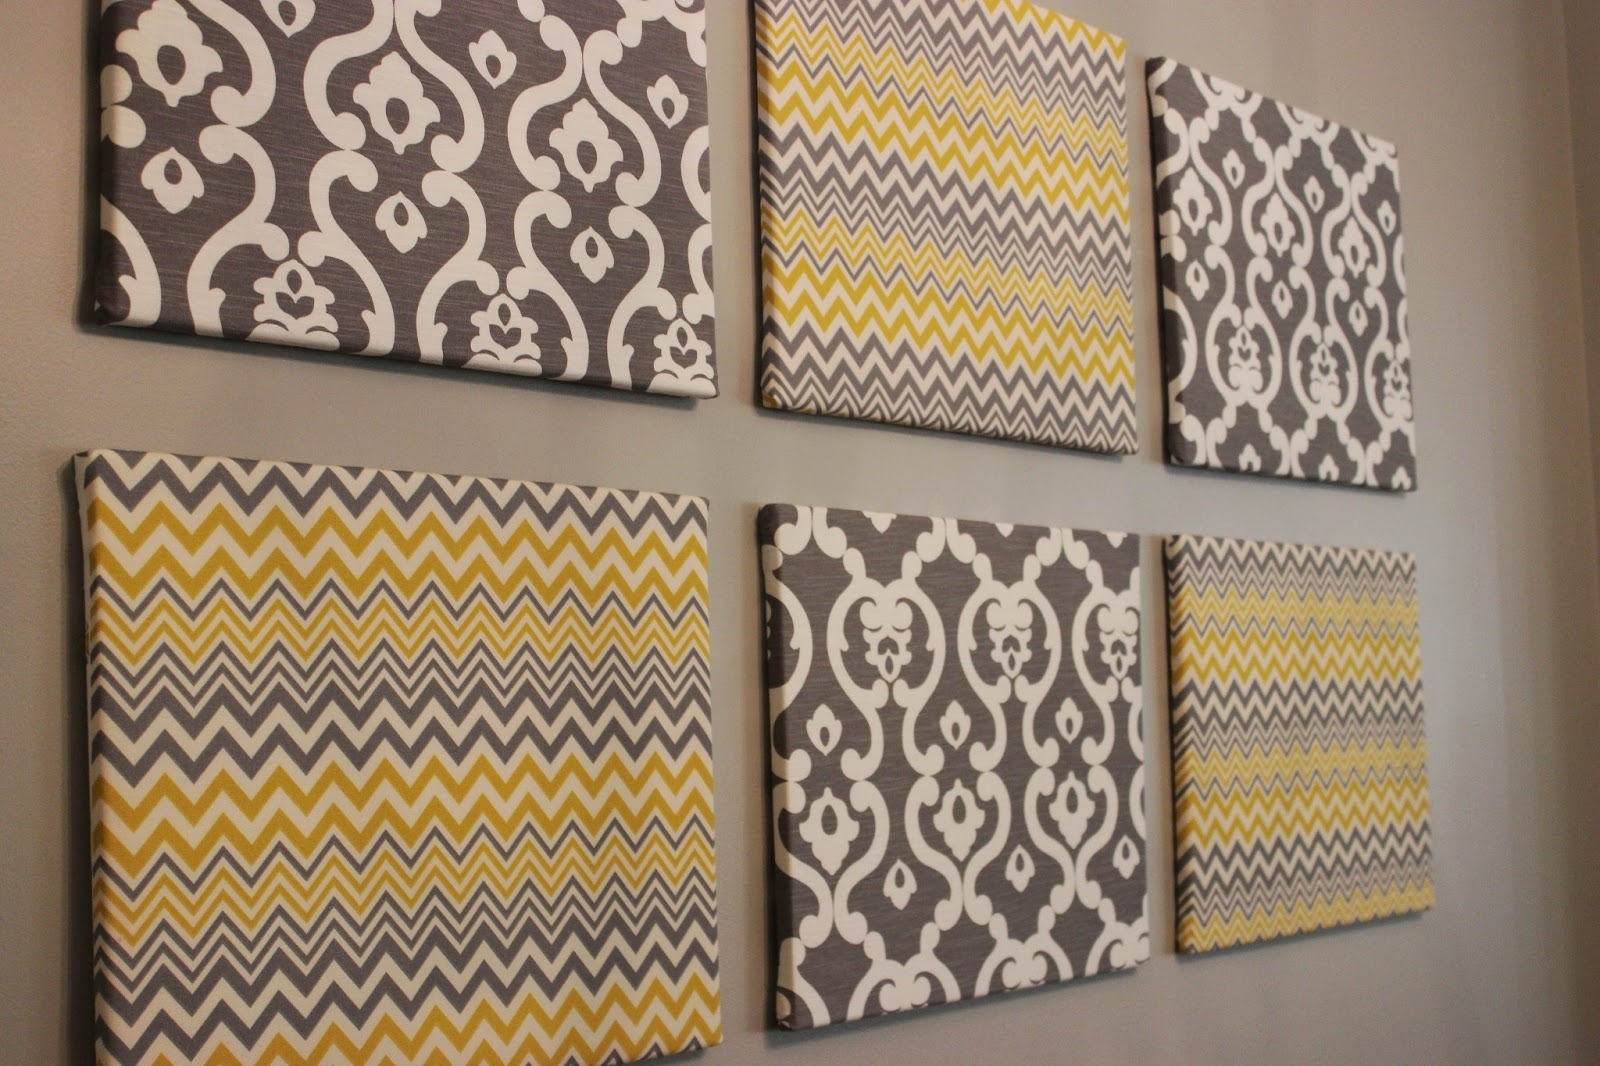 Preferred Fabric For Canvas Wall Art Inside Art: Diy Canvas Wall Art Ideas (View 8 of 15)